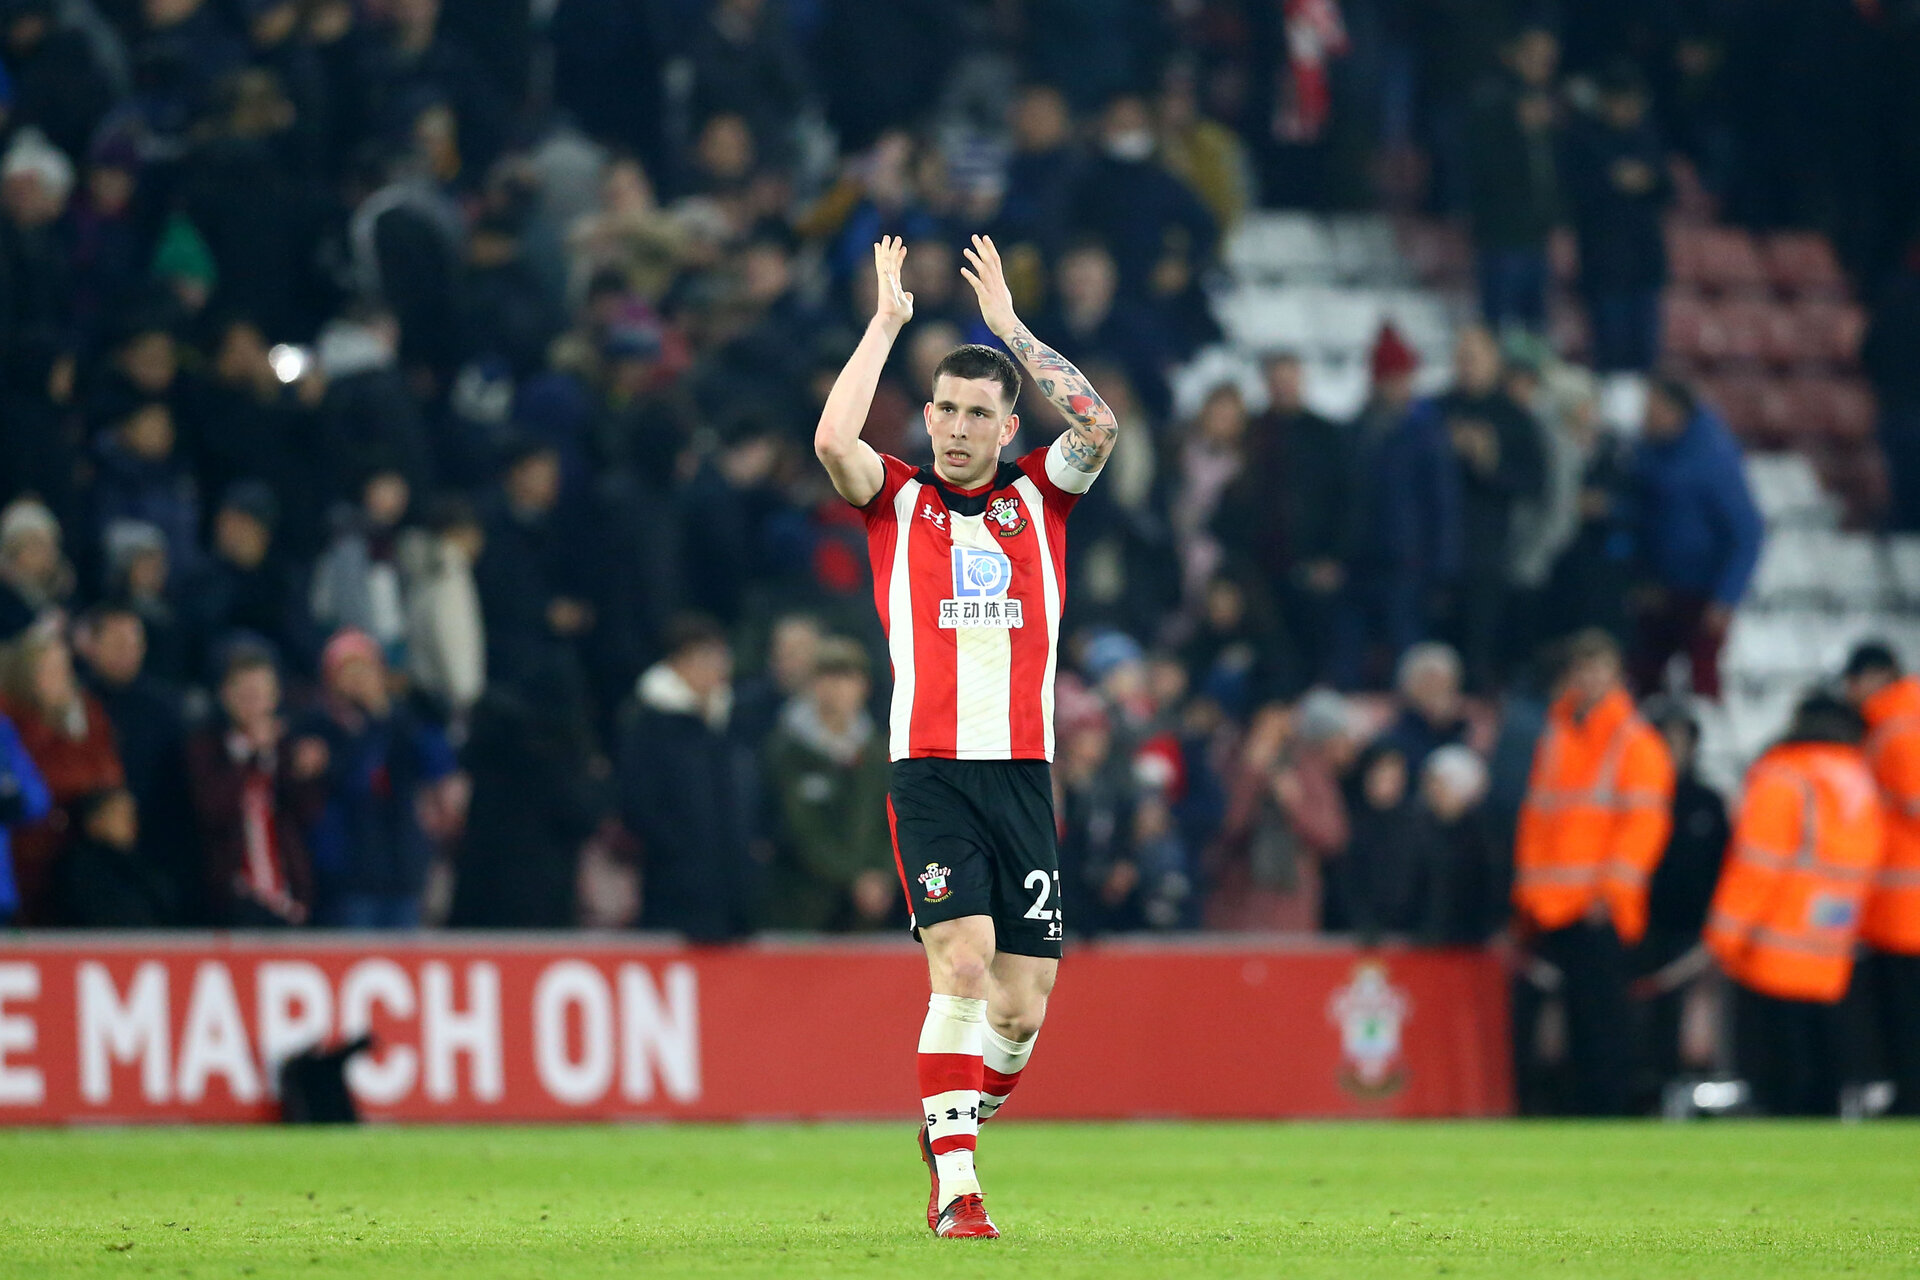 SOUTHAMPTON, ENGLAND - JANUARY 25: Pierre-Emile Hojbjerg during the FA Cup Fourth Round match between Southampton FC and Tottenham Hotspur at St. Mary's Stadium on January 25, 2020 in Southampton, England. (Photo by Isabelle Field/Southampton FC via Getty Images)